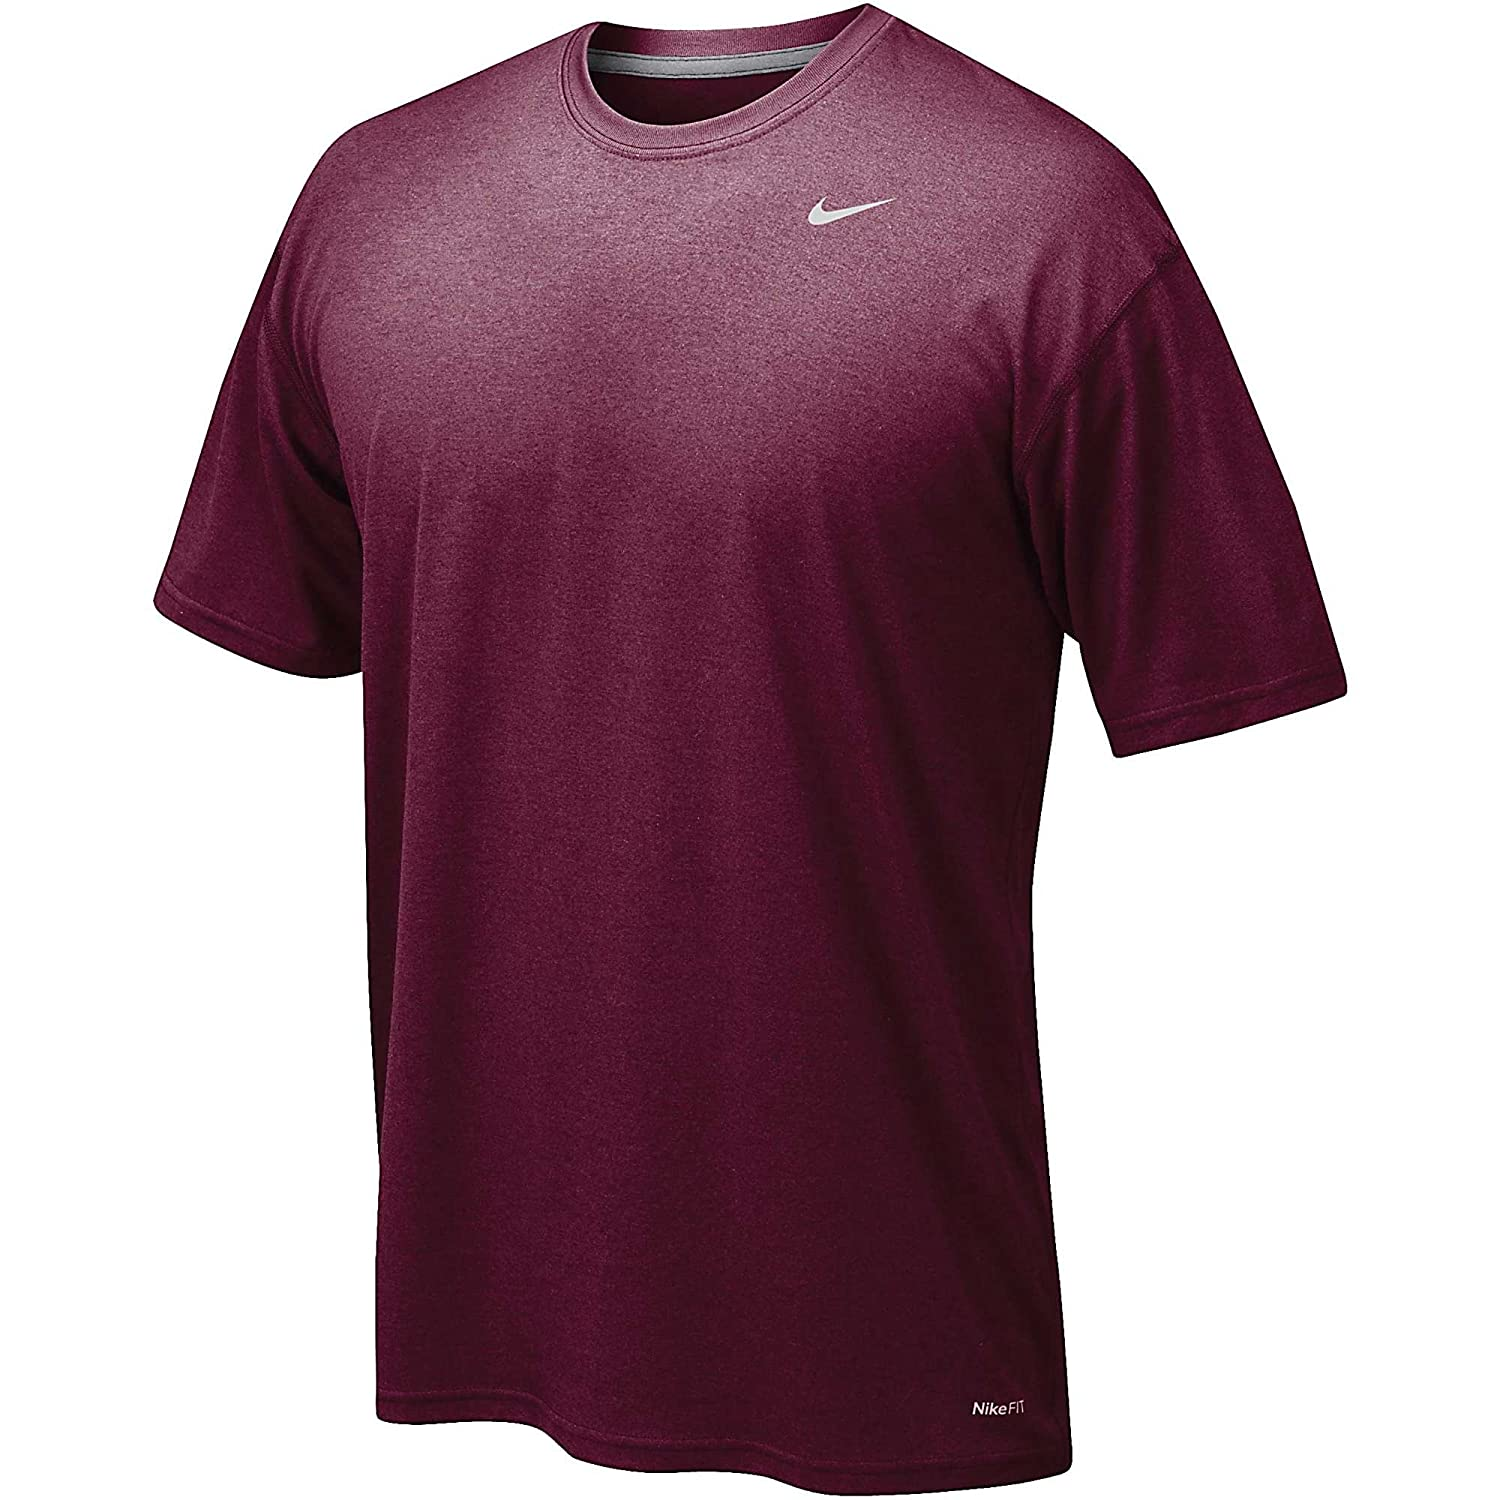 the best attitude b002d 08ea7 NIKE Mens Legend Short Sleeve Tee at Amazon Men s Clothing store